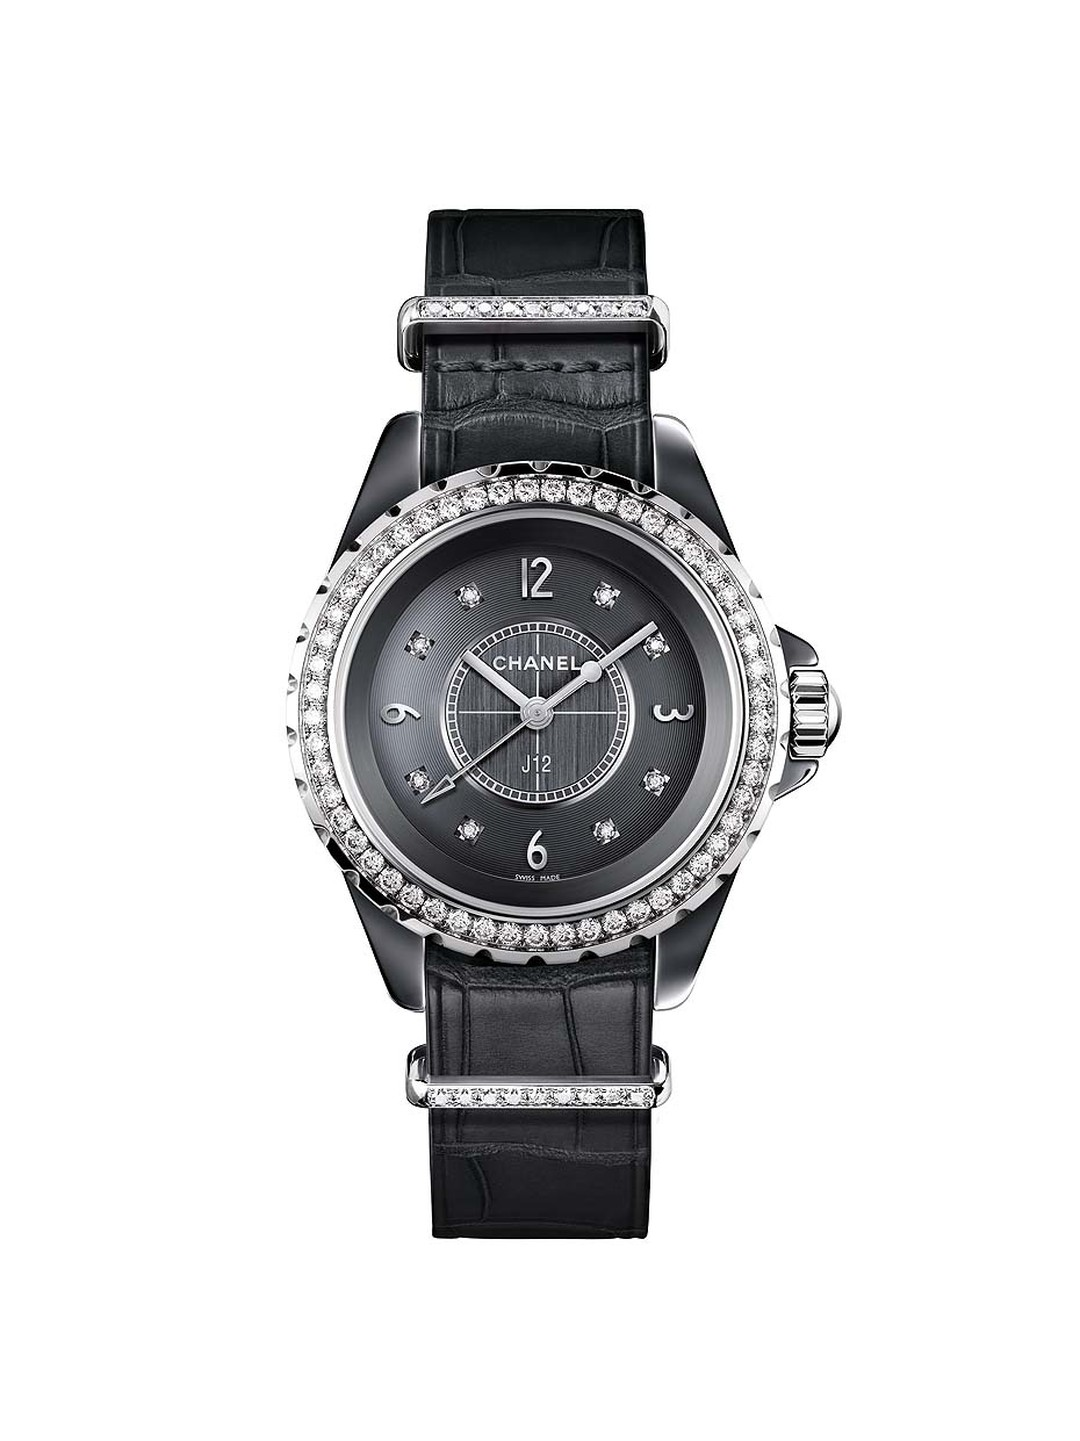 Chanel J12-G10 ladies' watch in a 33mm titanium ceramic and steel case with 8 brilliant-cut diamonds as indices. The bezel, strap keepers and pin buckle are also set with brilliant-cut diamonds providing a sharp contrast to the grey dial.